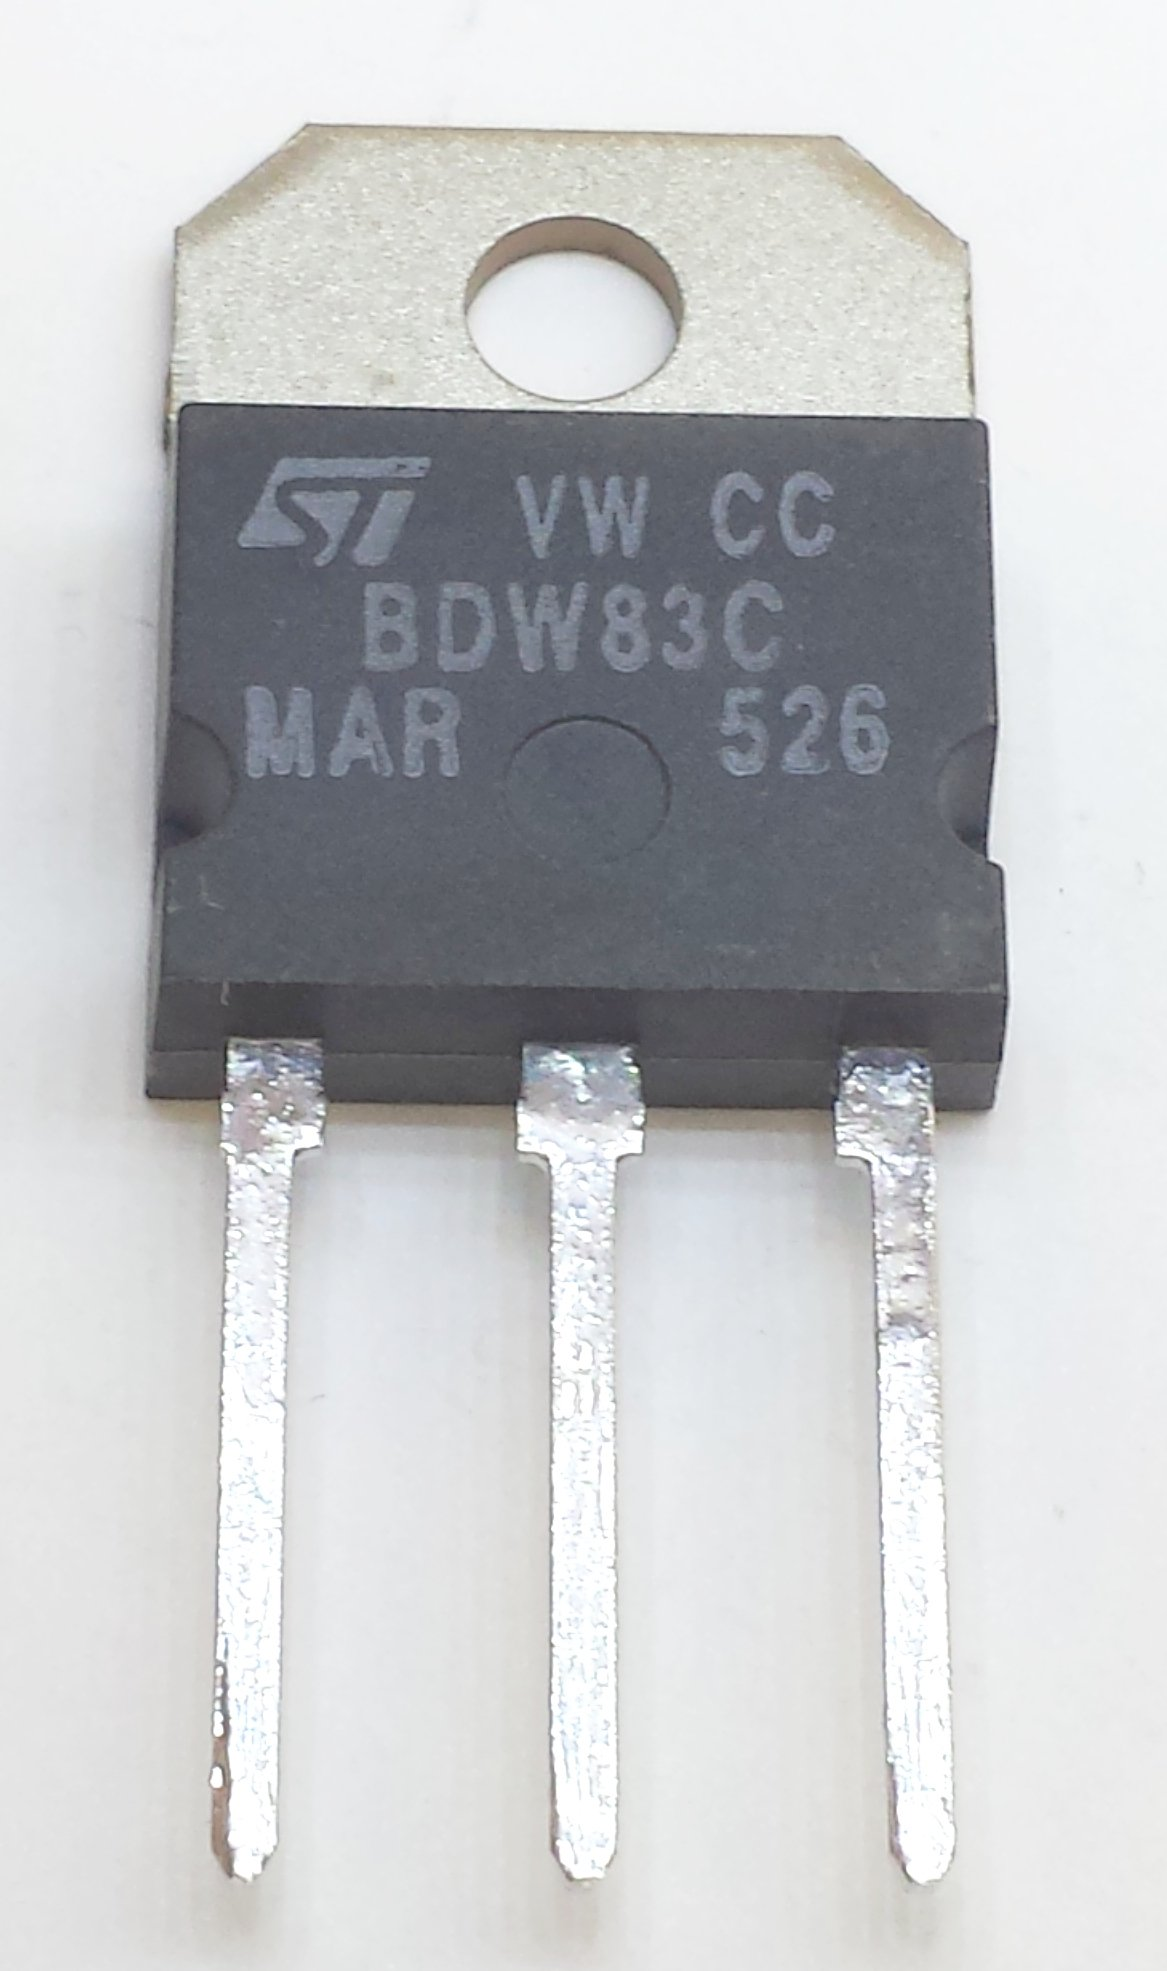 8 pieces BDW83C NPN SILICON POWER DARLINGTON TRANSISTOR | VCEO 100V | Ic 15A | Ptot 130W | TO-218 Package